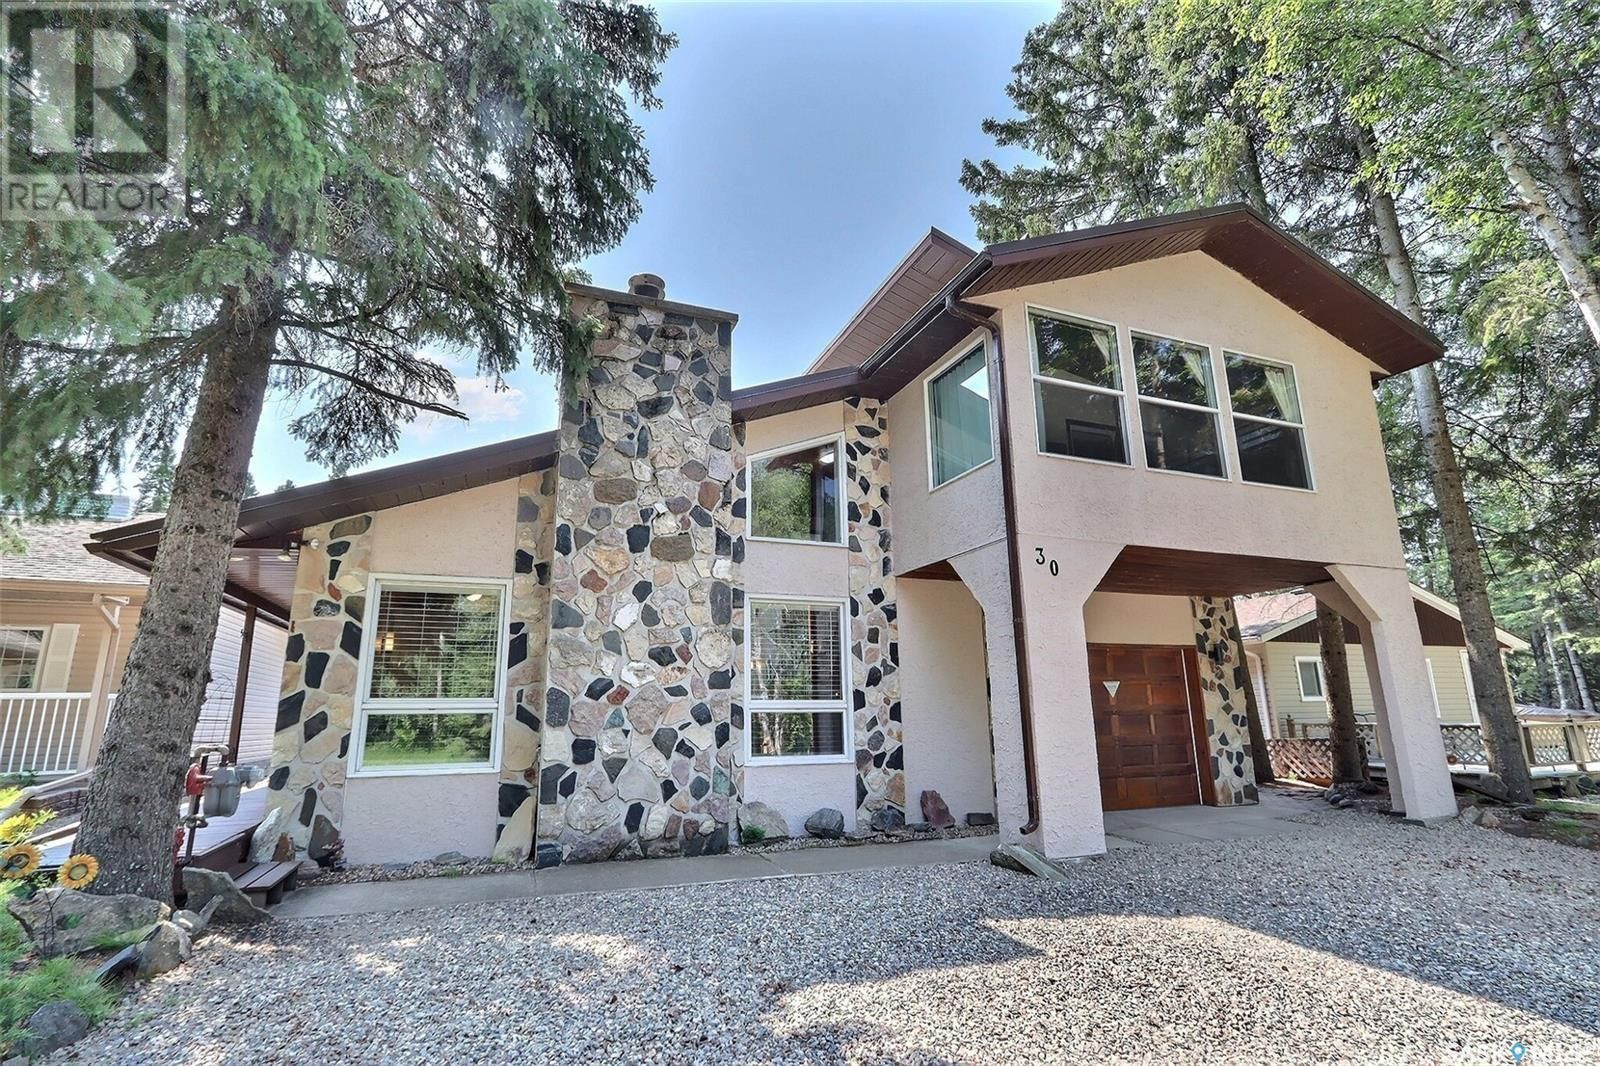 Main Photo: 30 Lakeshore DR in Candle Lake: House for sale : MLS®# SK862494